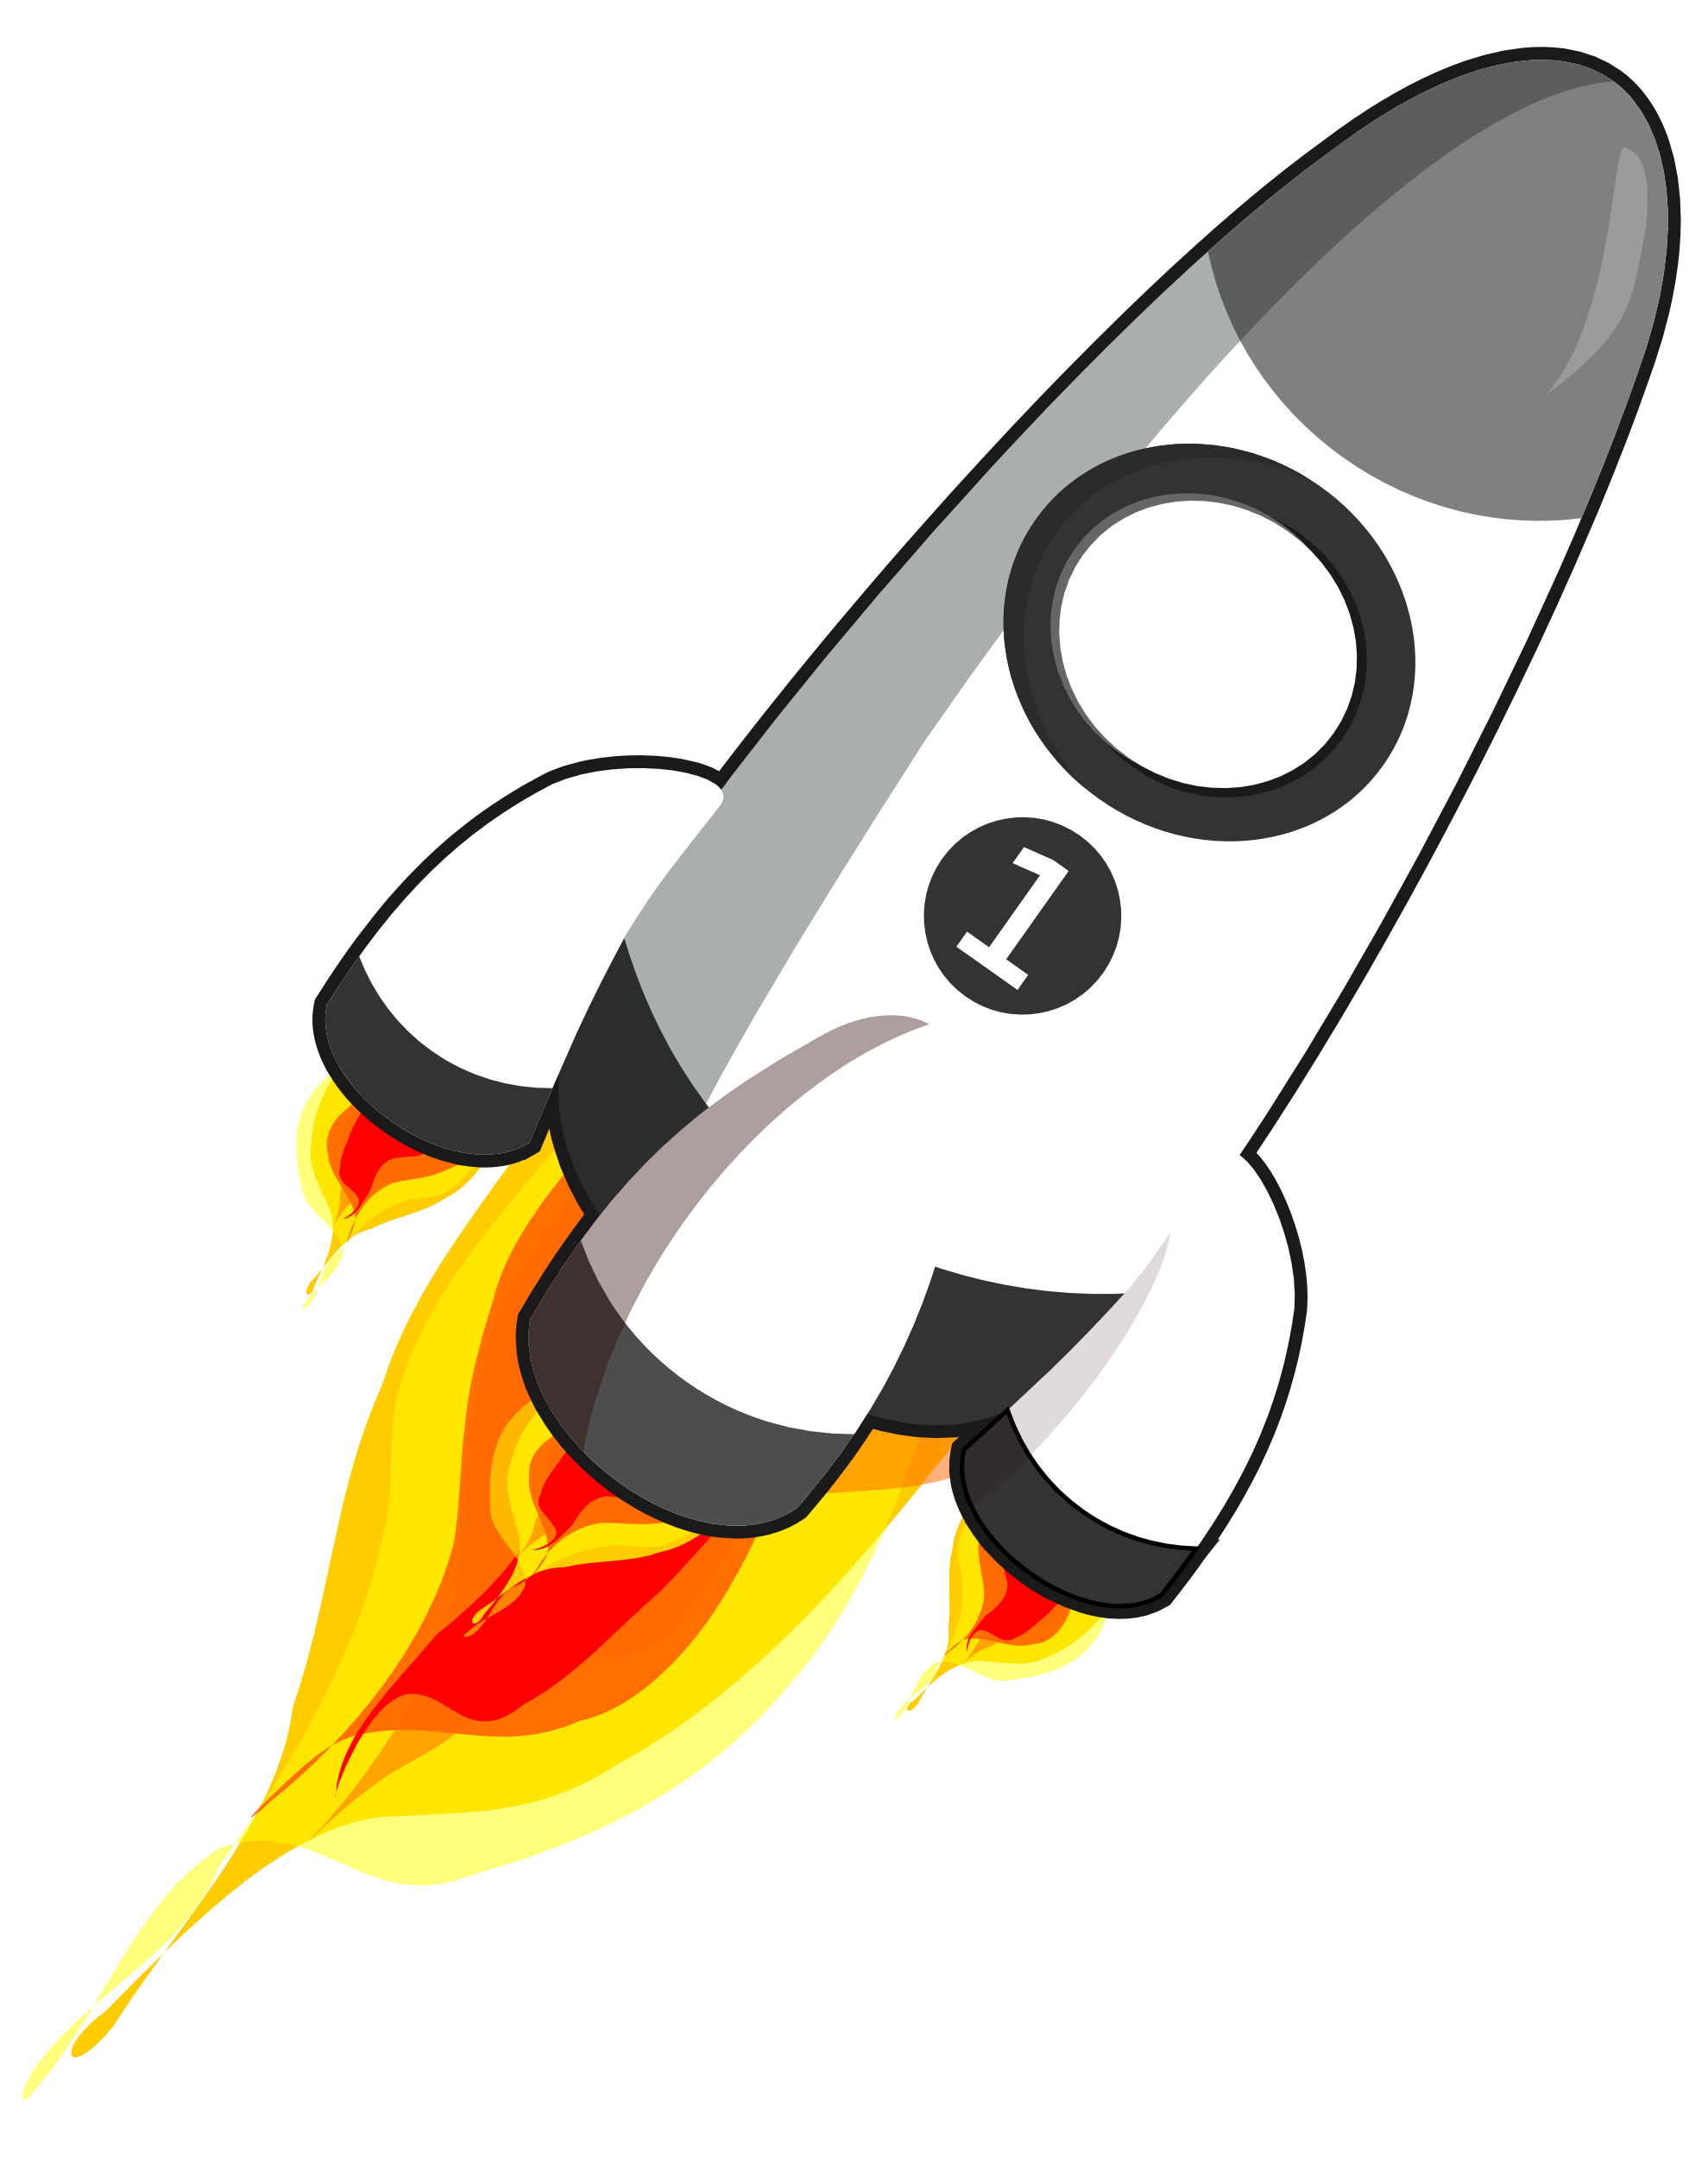 Missile clipart bottle rocket Rocket%20clipart%20black%20and%20white Clipart Clipart Black Free